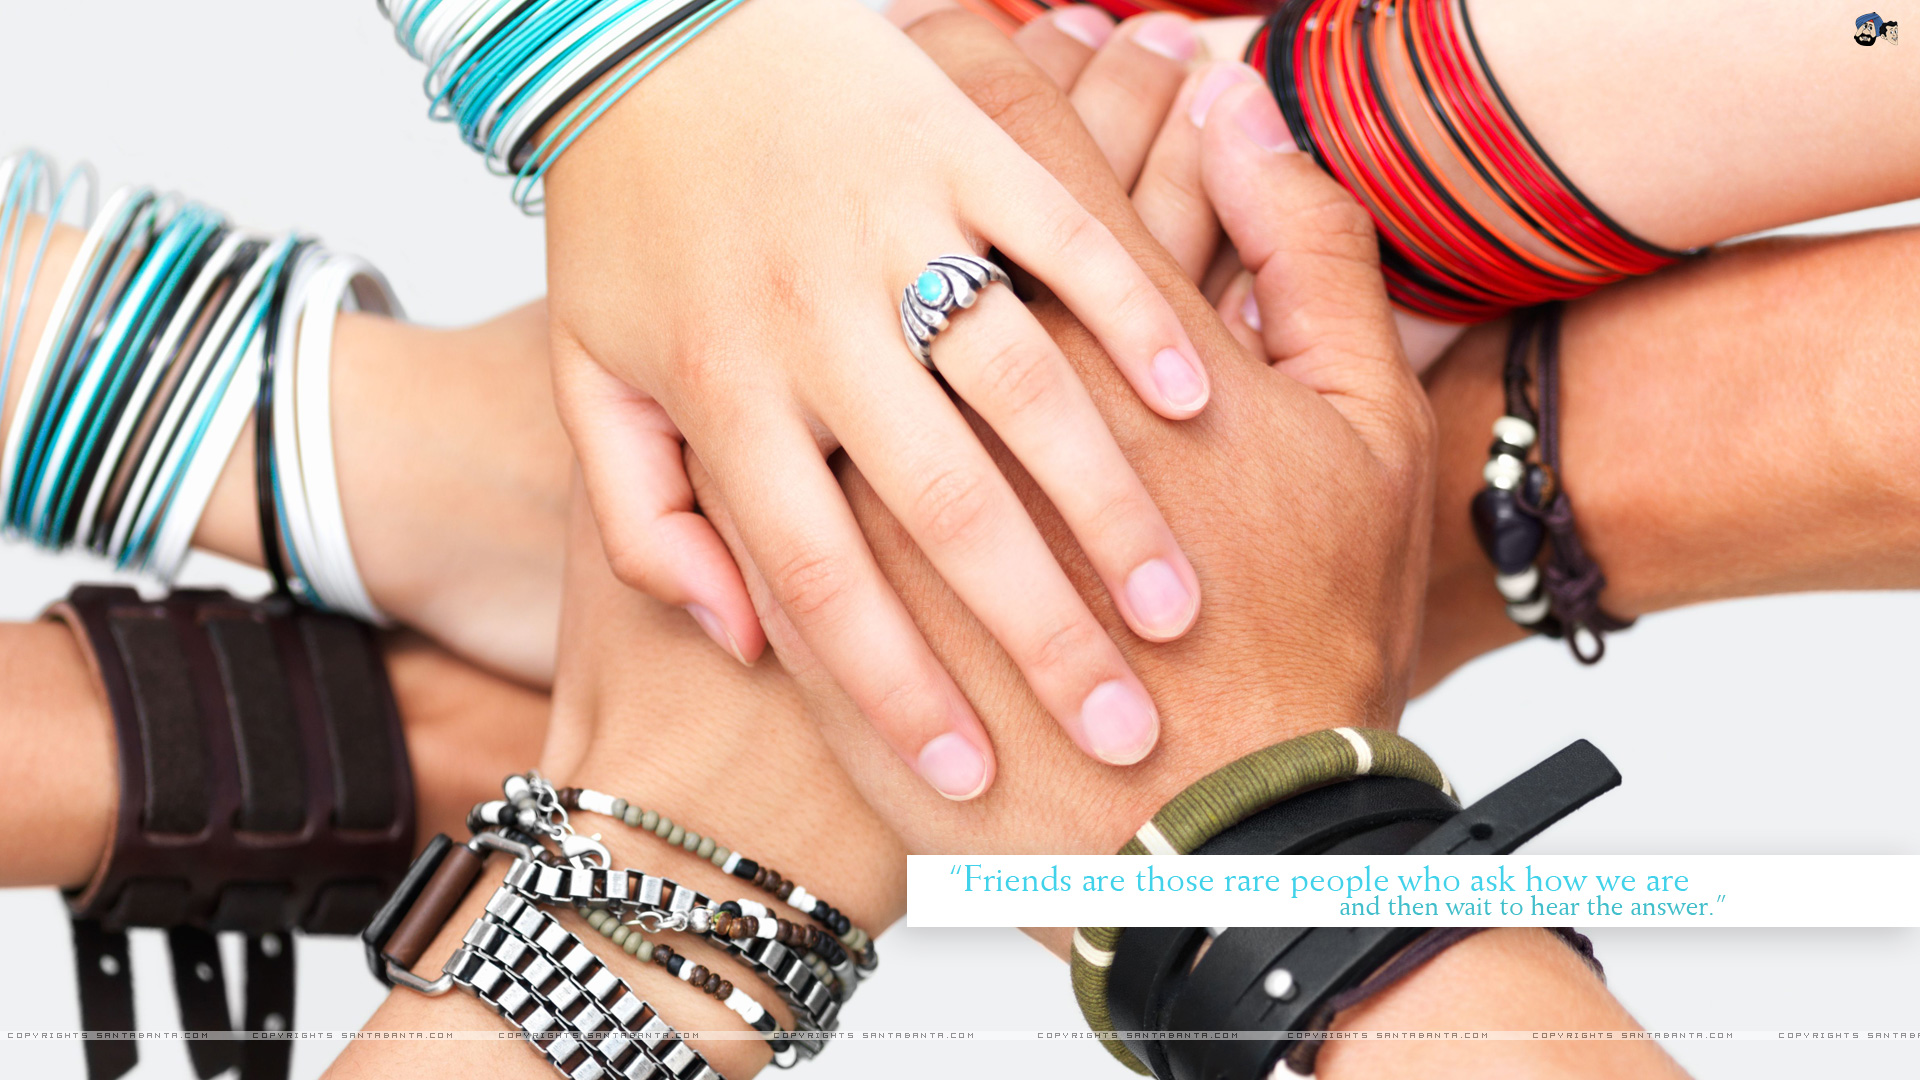 Hd Wide New Wallpapers Friendship Day 2015 Best Facebook 1920x1080